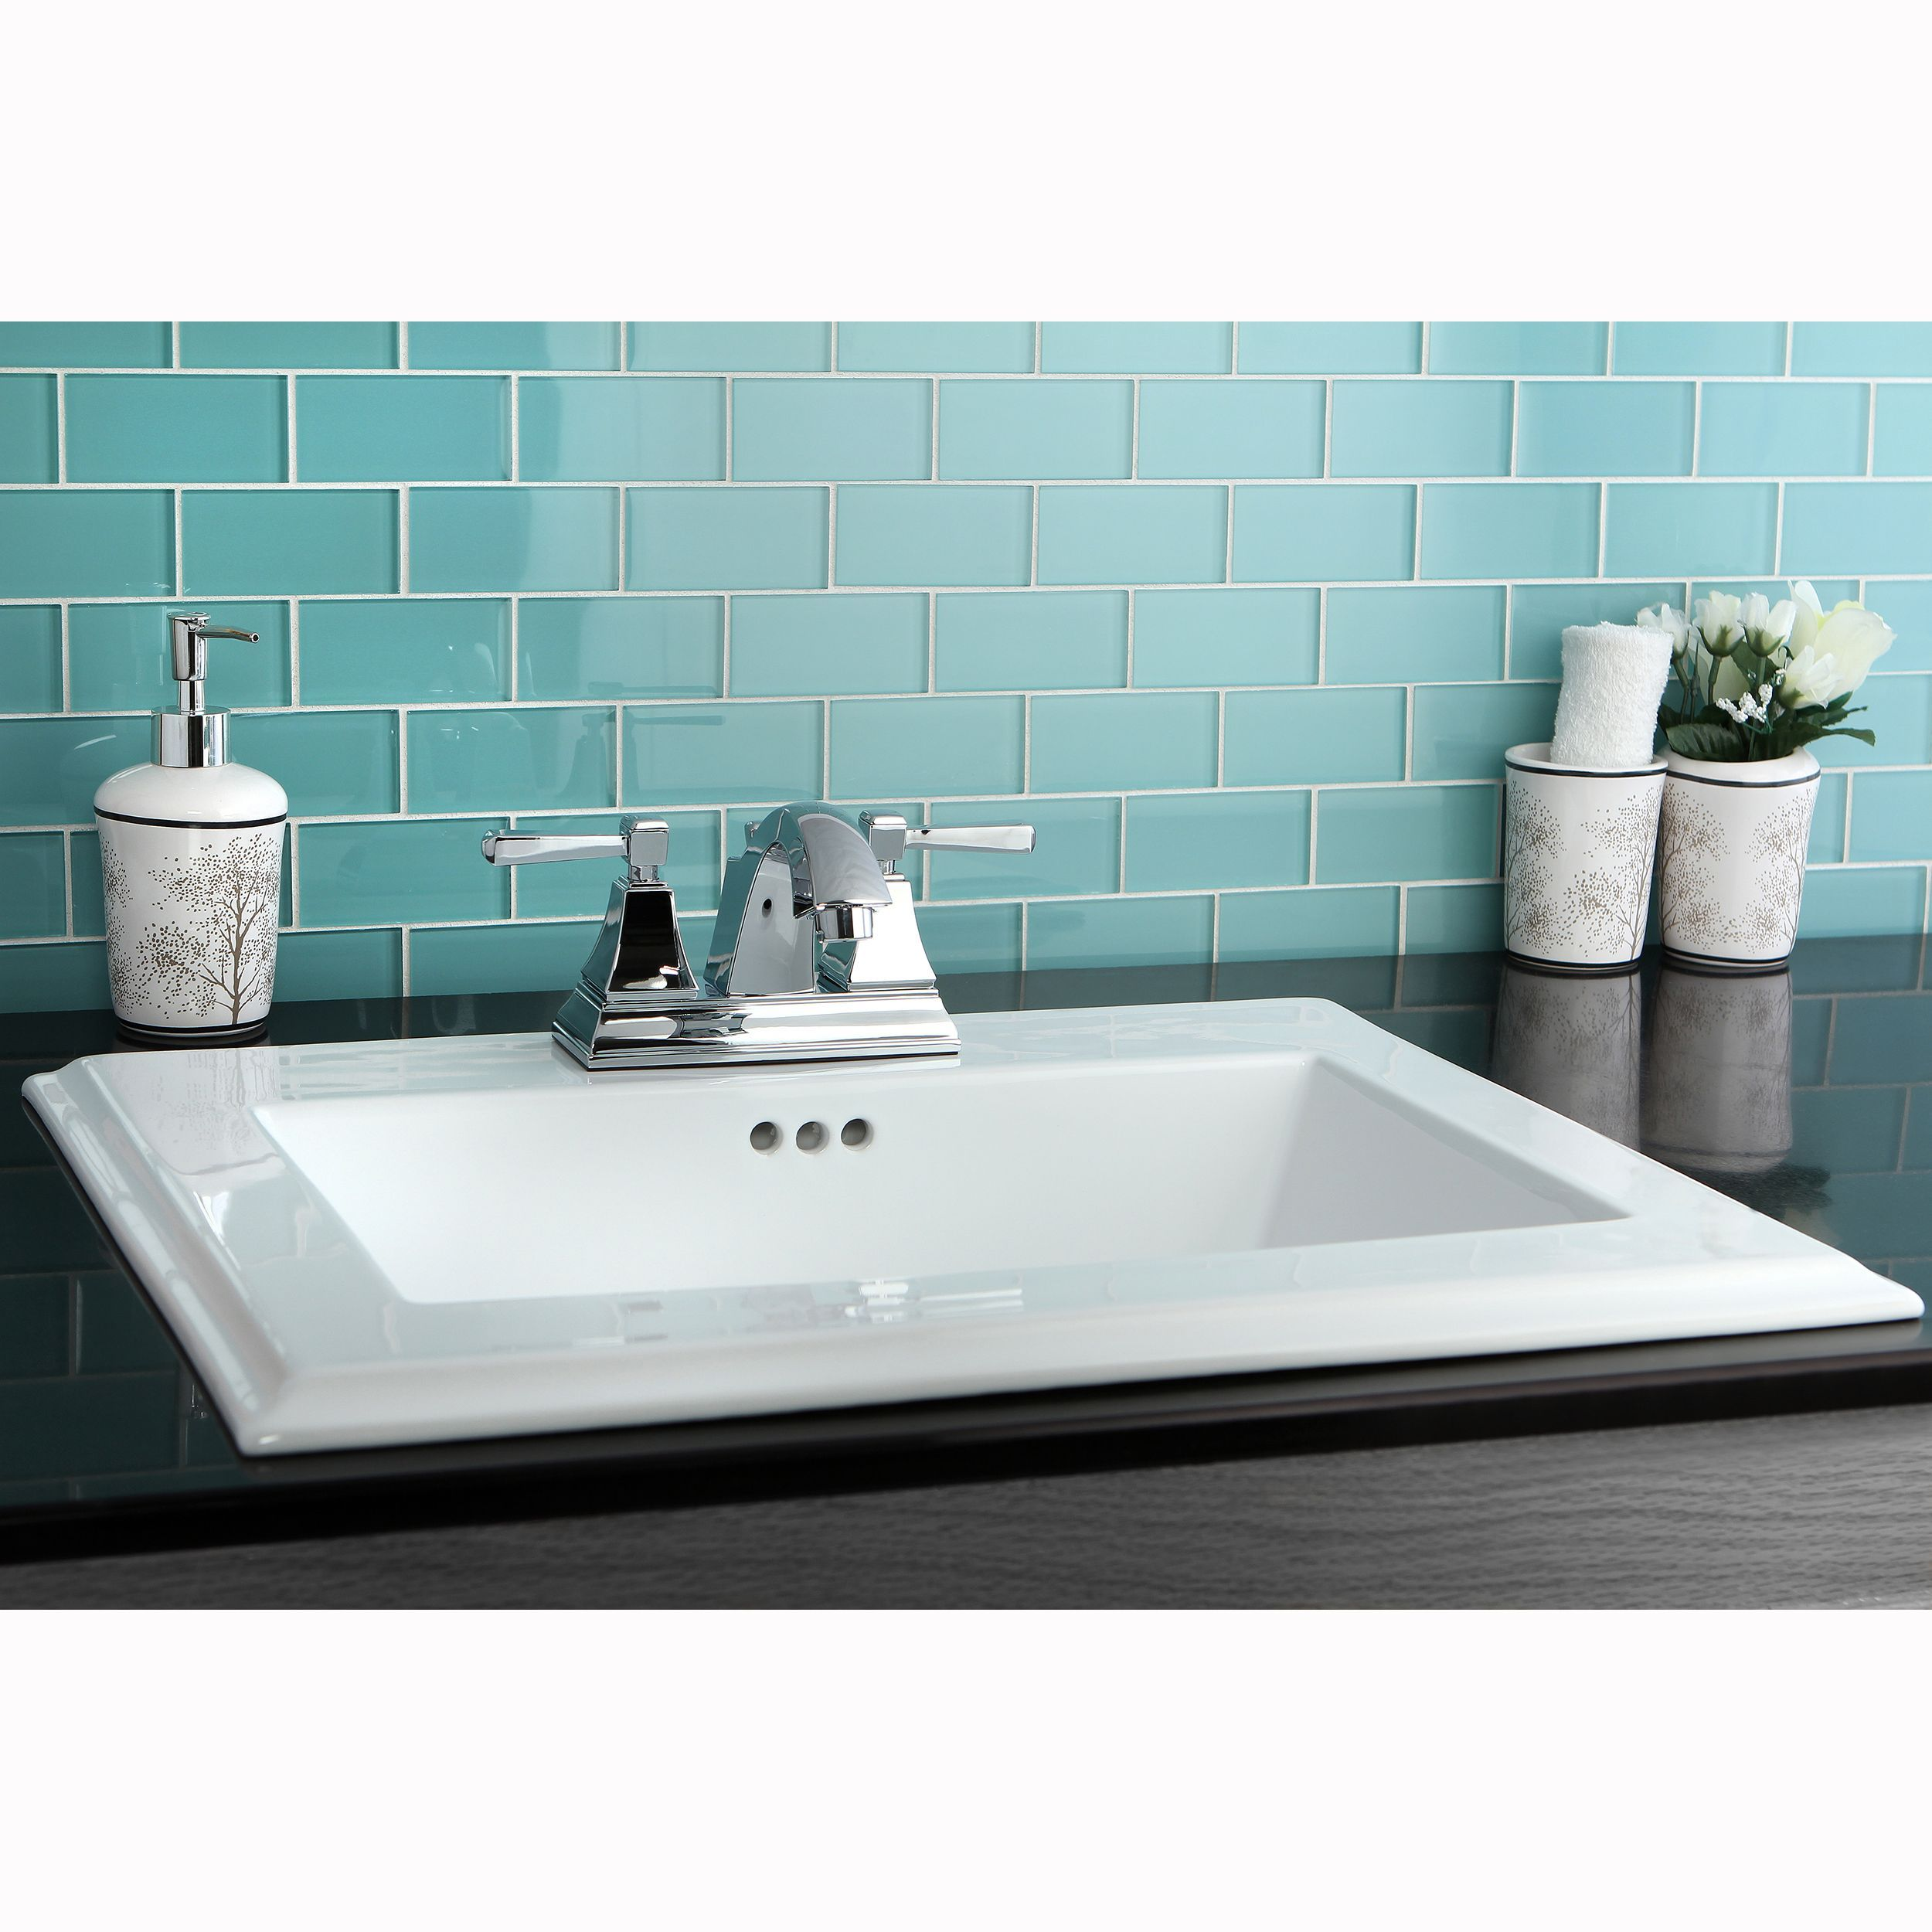 Surface mount 4 inch center bathroom sink by kingston for Bathroom design kingston